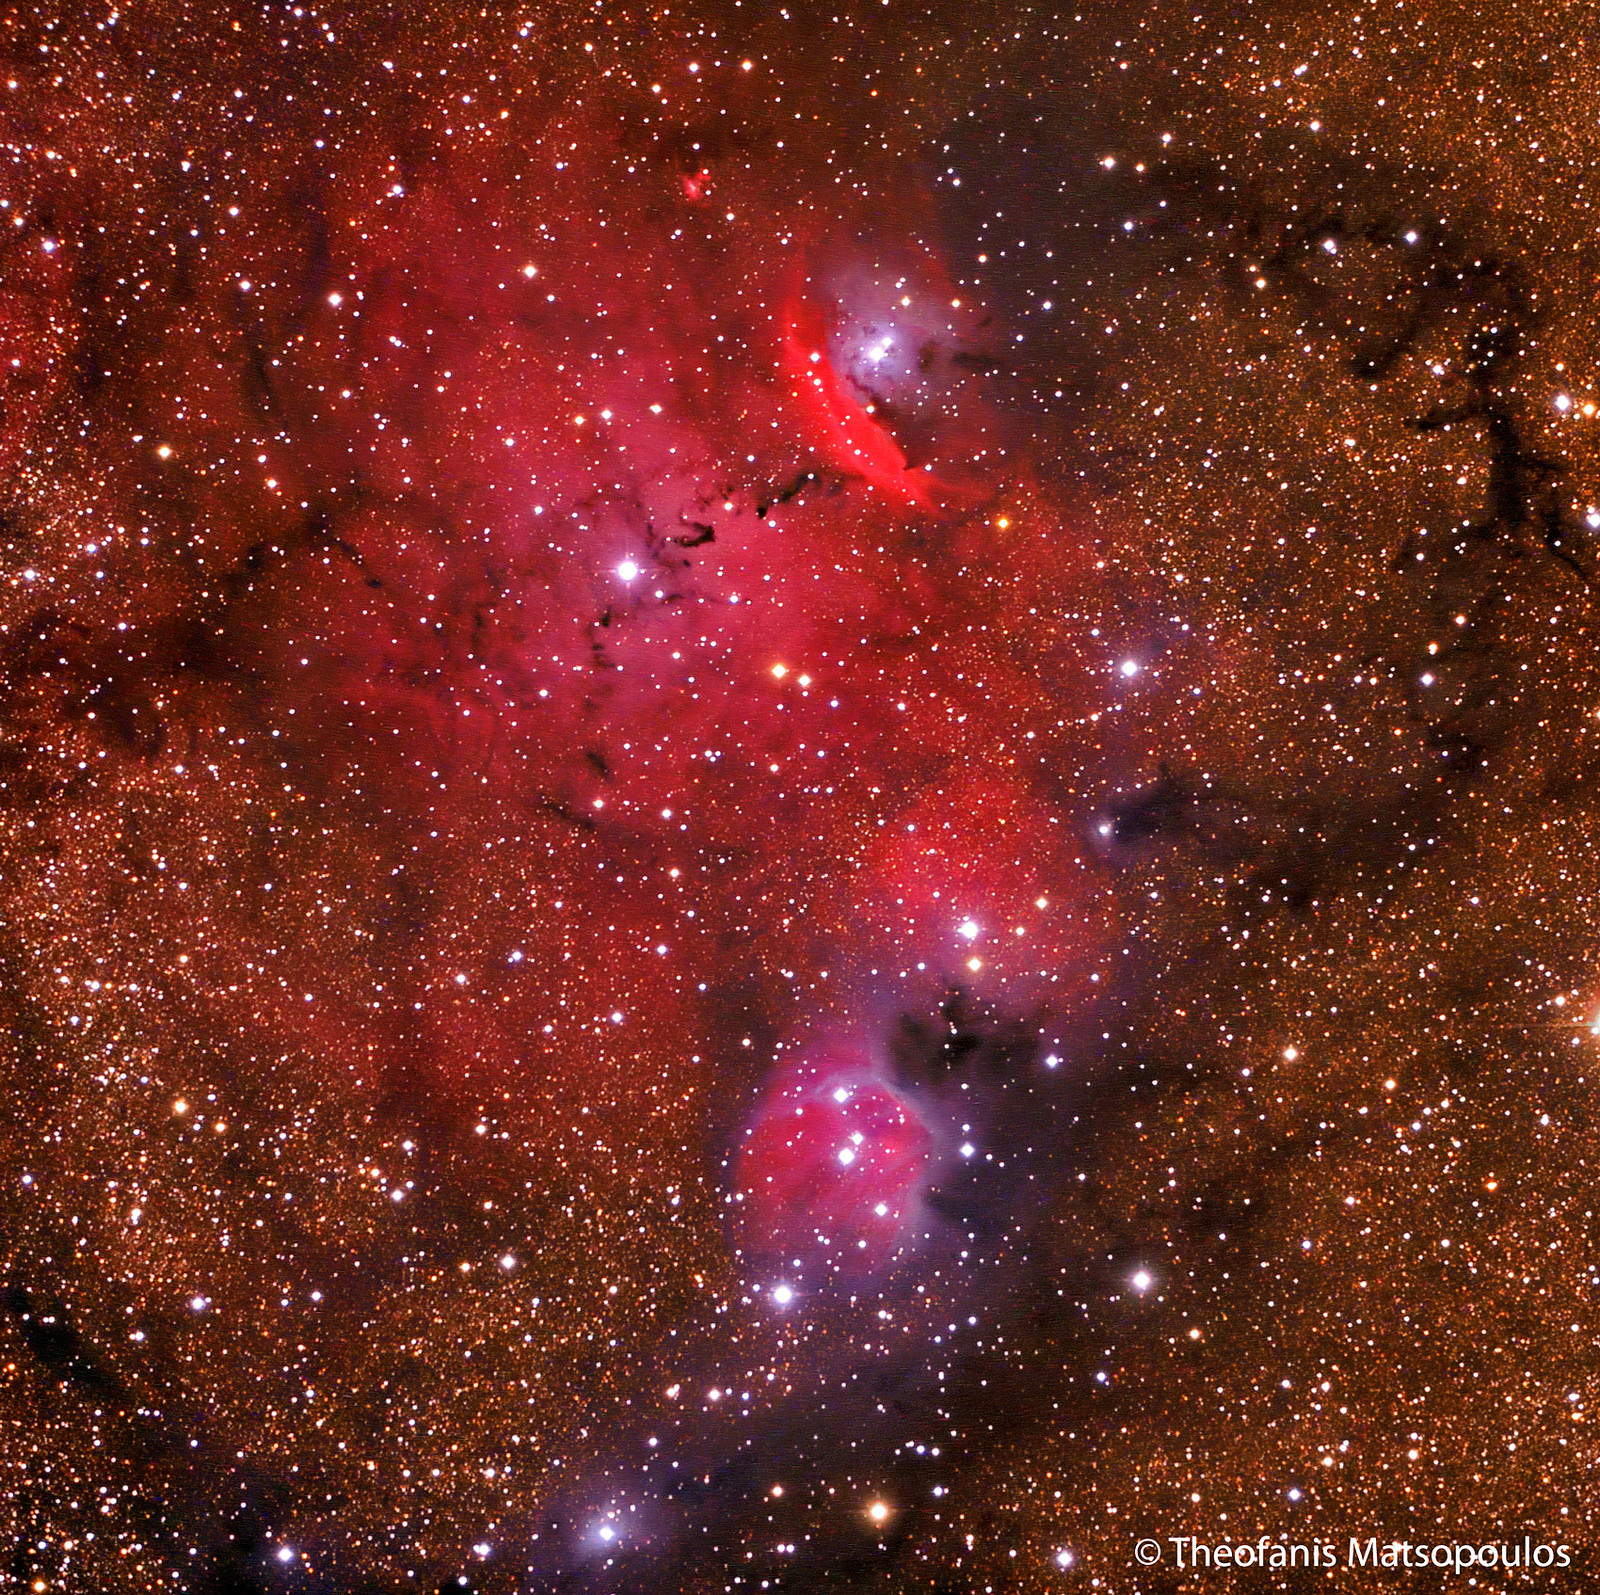 NGC6559 by Theofanis Matsopoulos